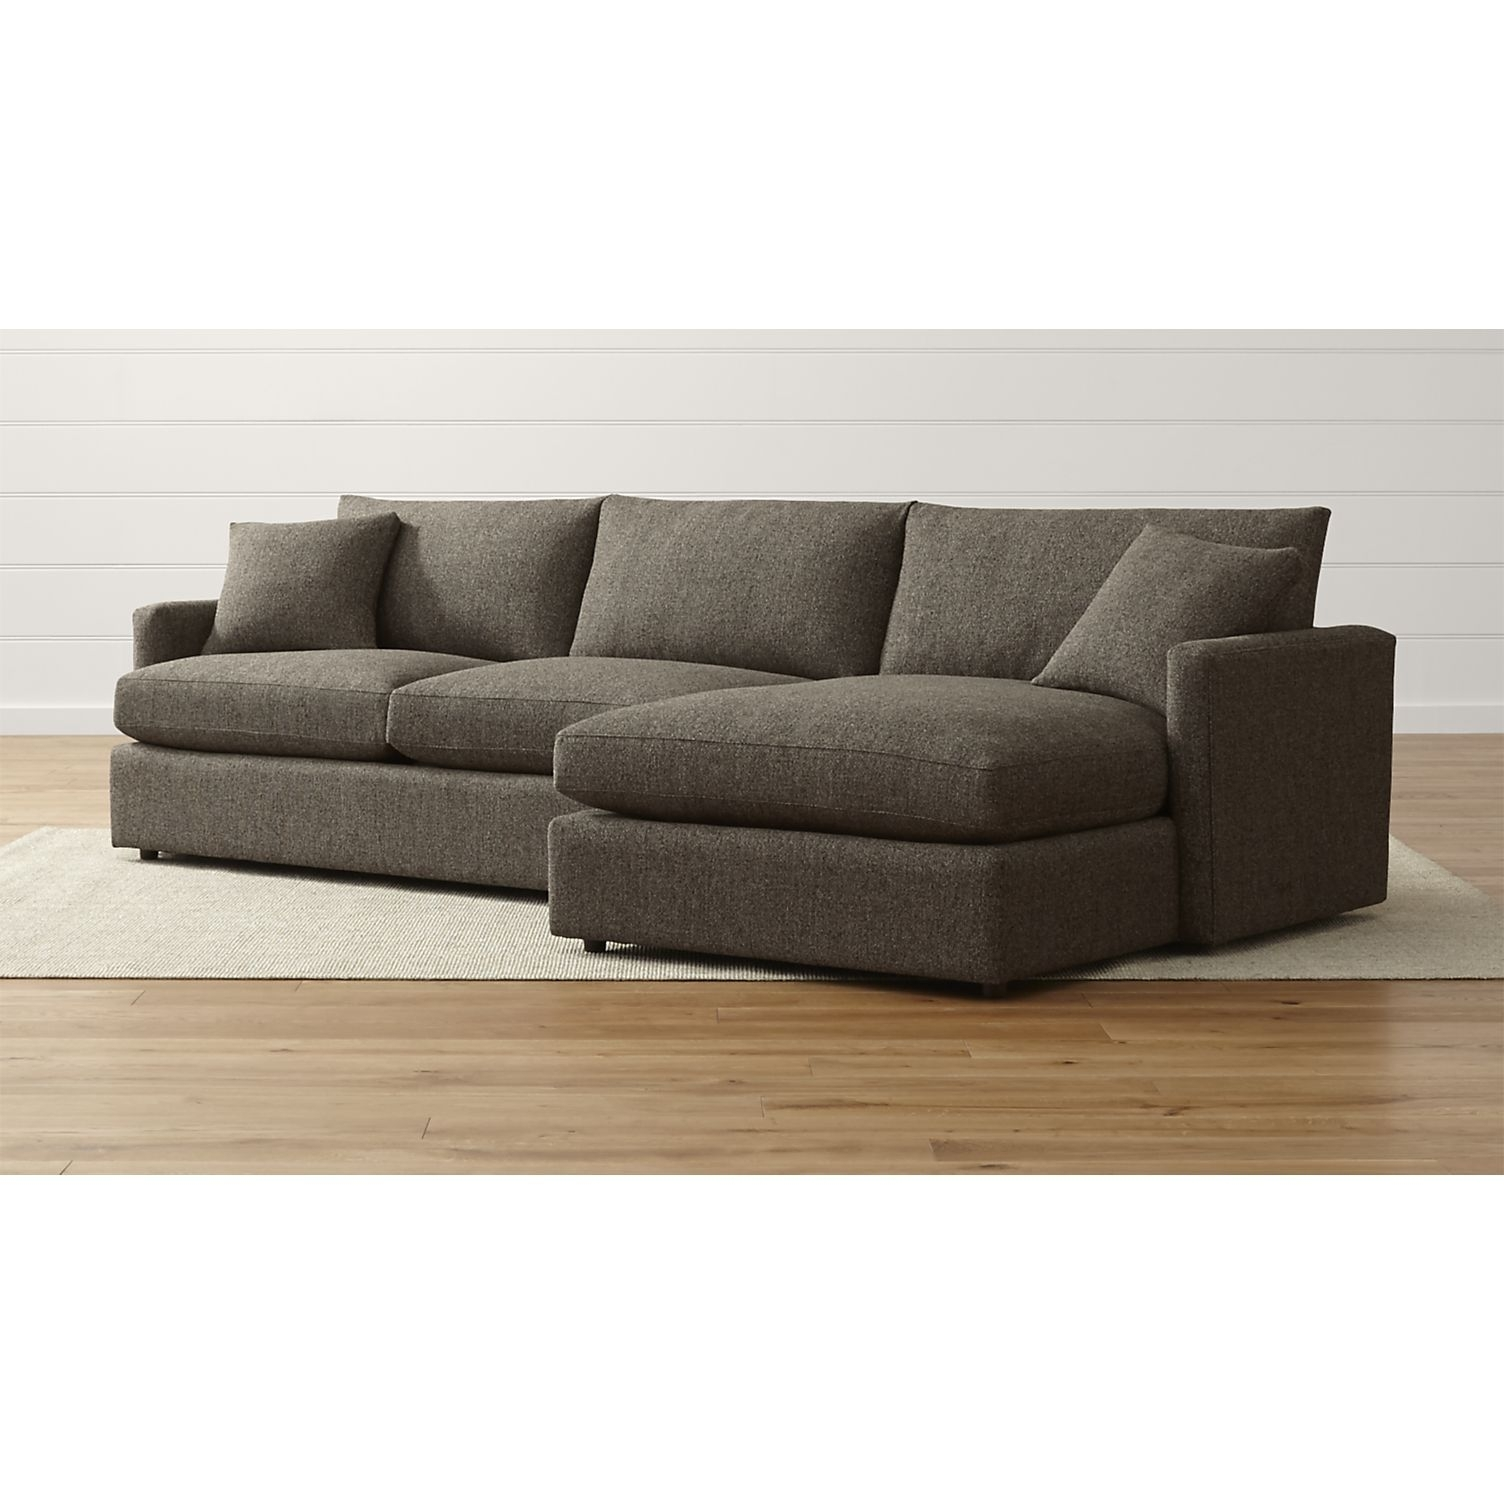 Elegant Futon Sectional Sofa Bed Pictures — Beautiful Furniture Home Intended For Arrowmask 2 Piece Sectionals With Sleeper & Right Facing Chaise (Image 6 of 25)